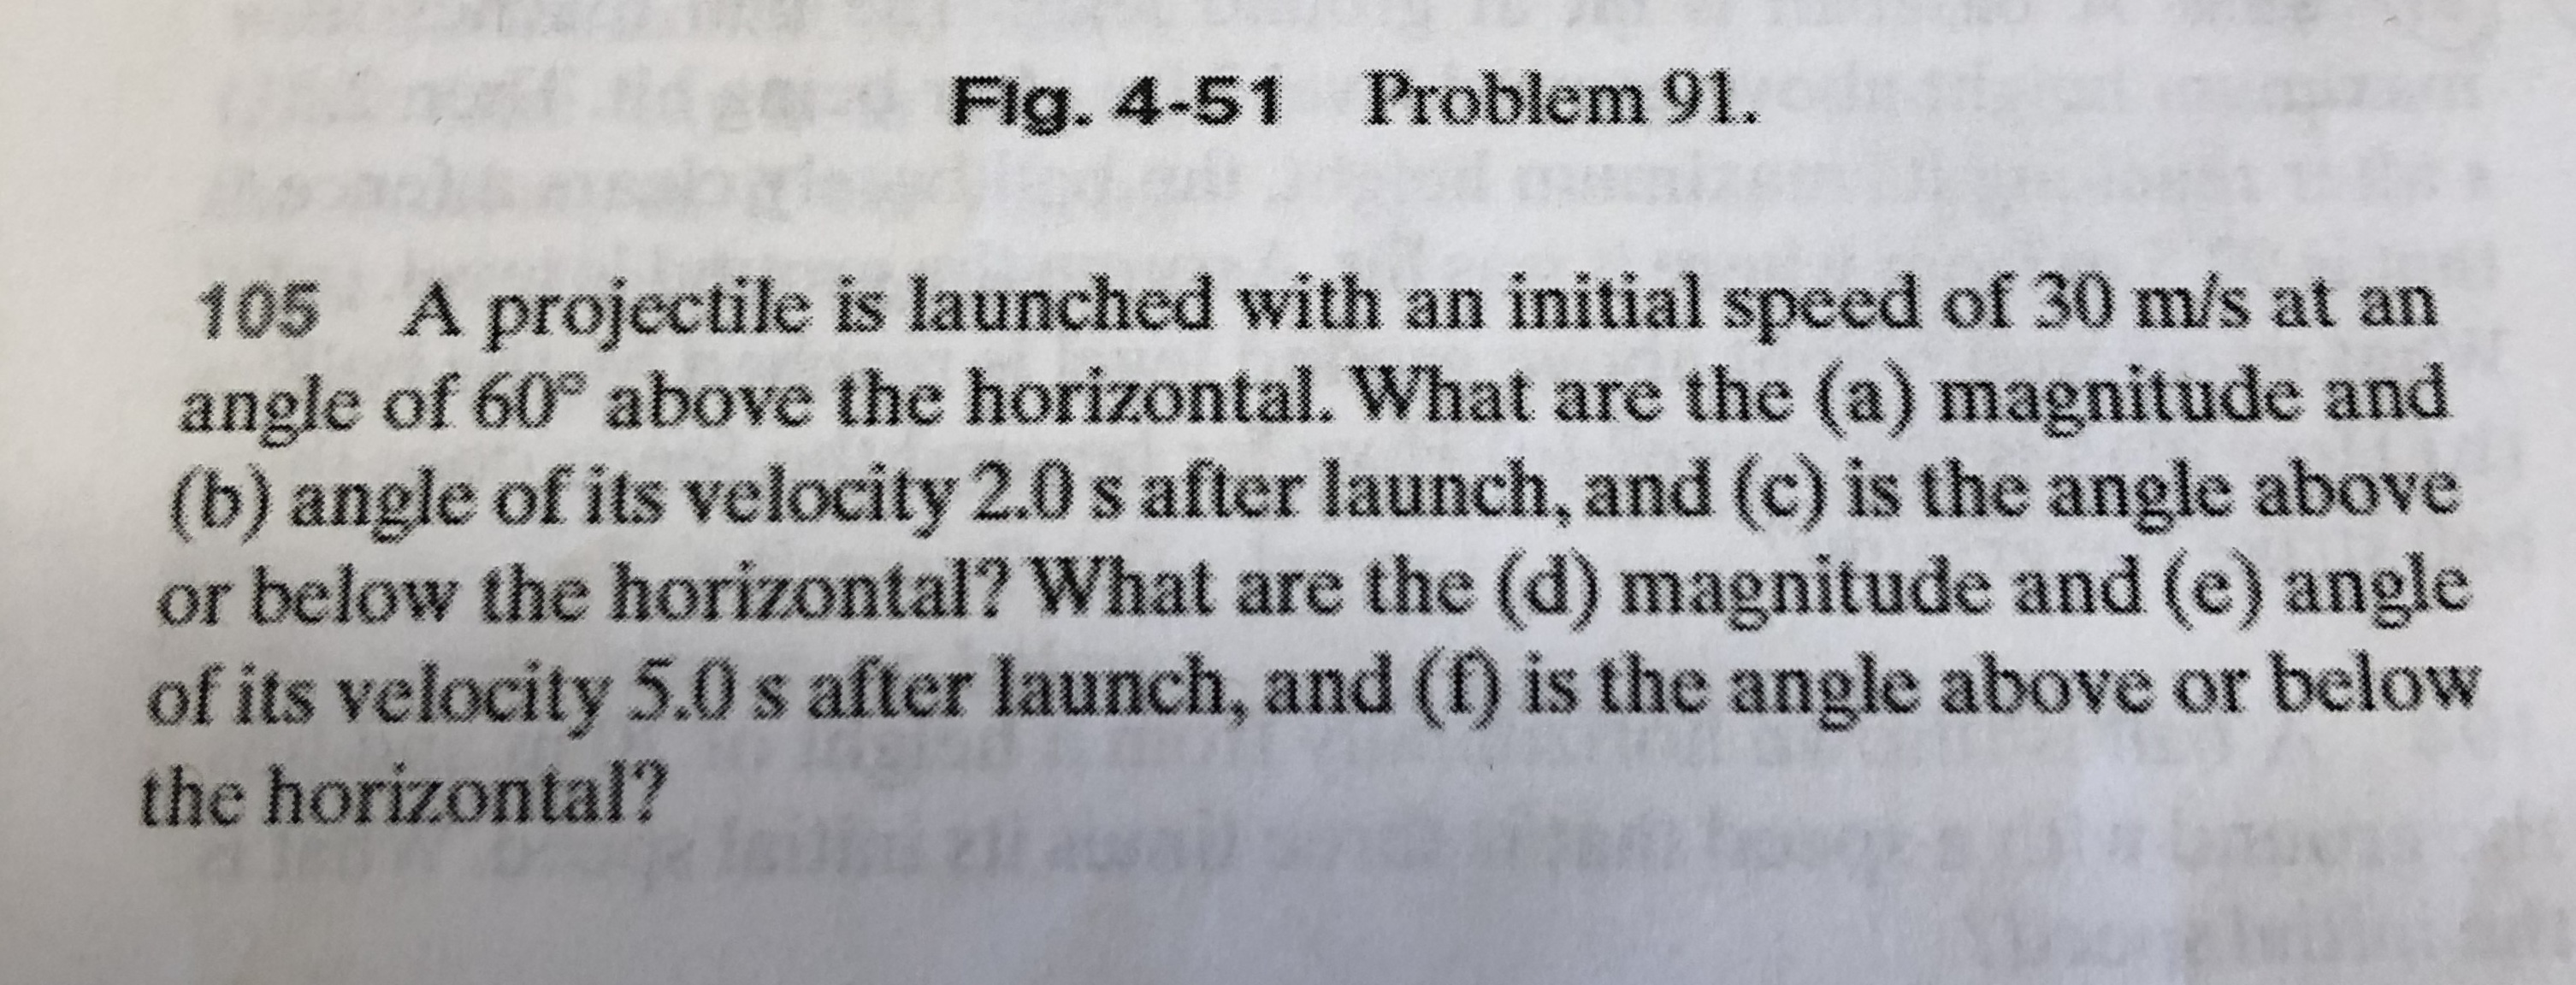 Flg. 4-51 Problem 91. A projectile is launched with an initial speed of 30 m/s at an angle of 60° above the horizontal. What are the (a) magnitude and (b) angle of its velocity 2.0 s after launch, and (c) is the angle above or below the horizontal? What are the (d) magnitude and (e) angle of its velocity 5.0 s after launch, and (f) is the angle above or below 105 the horizontal?